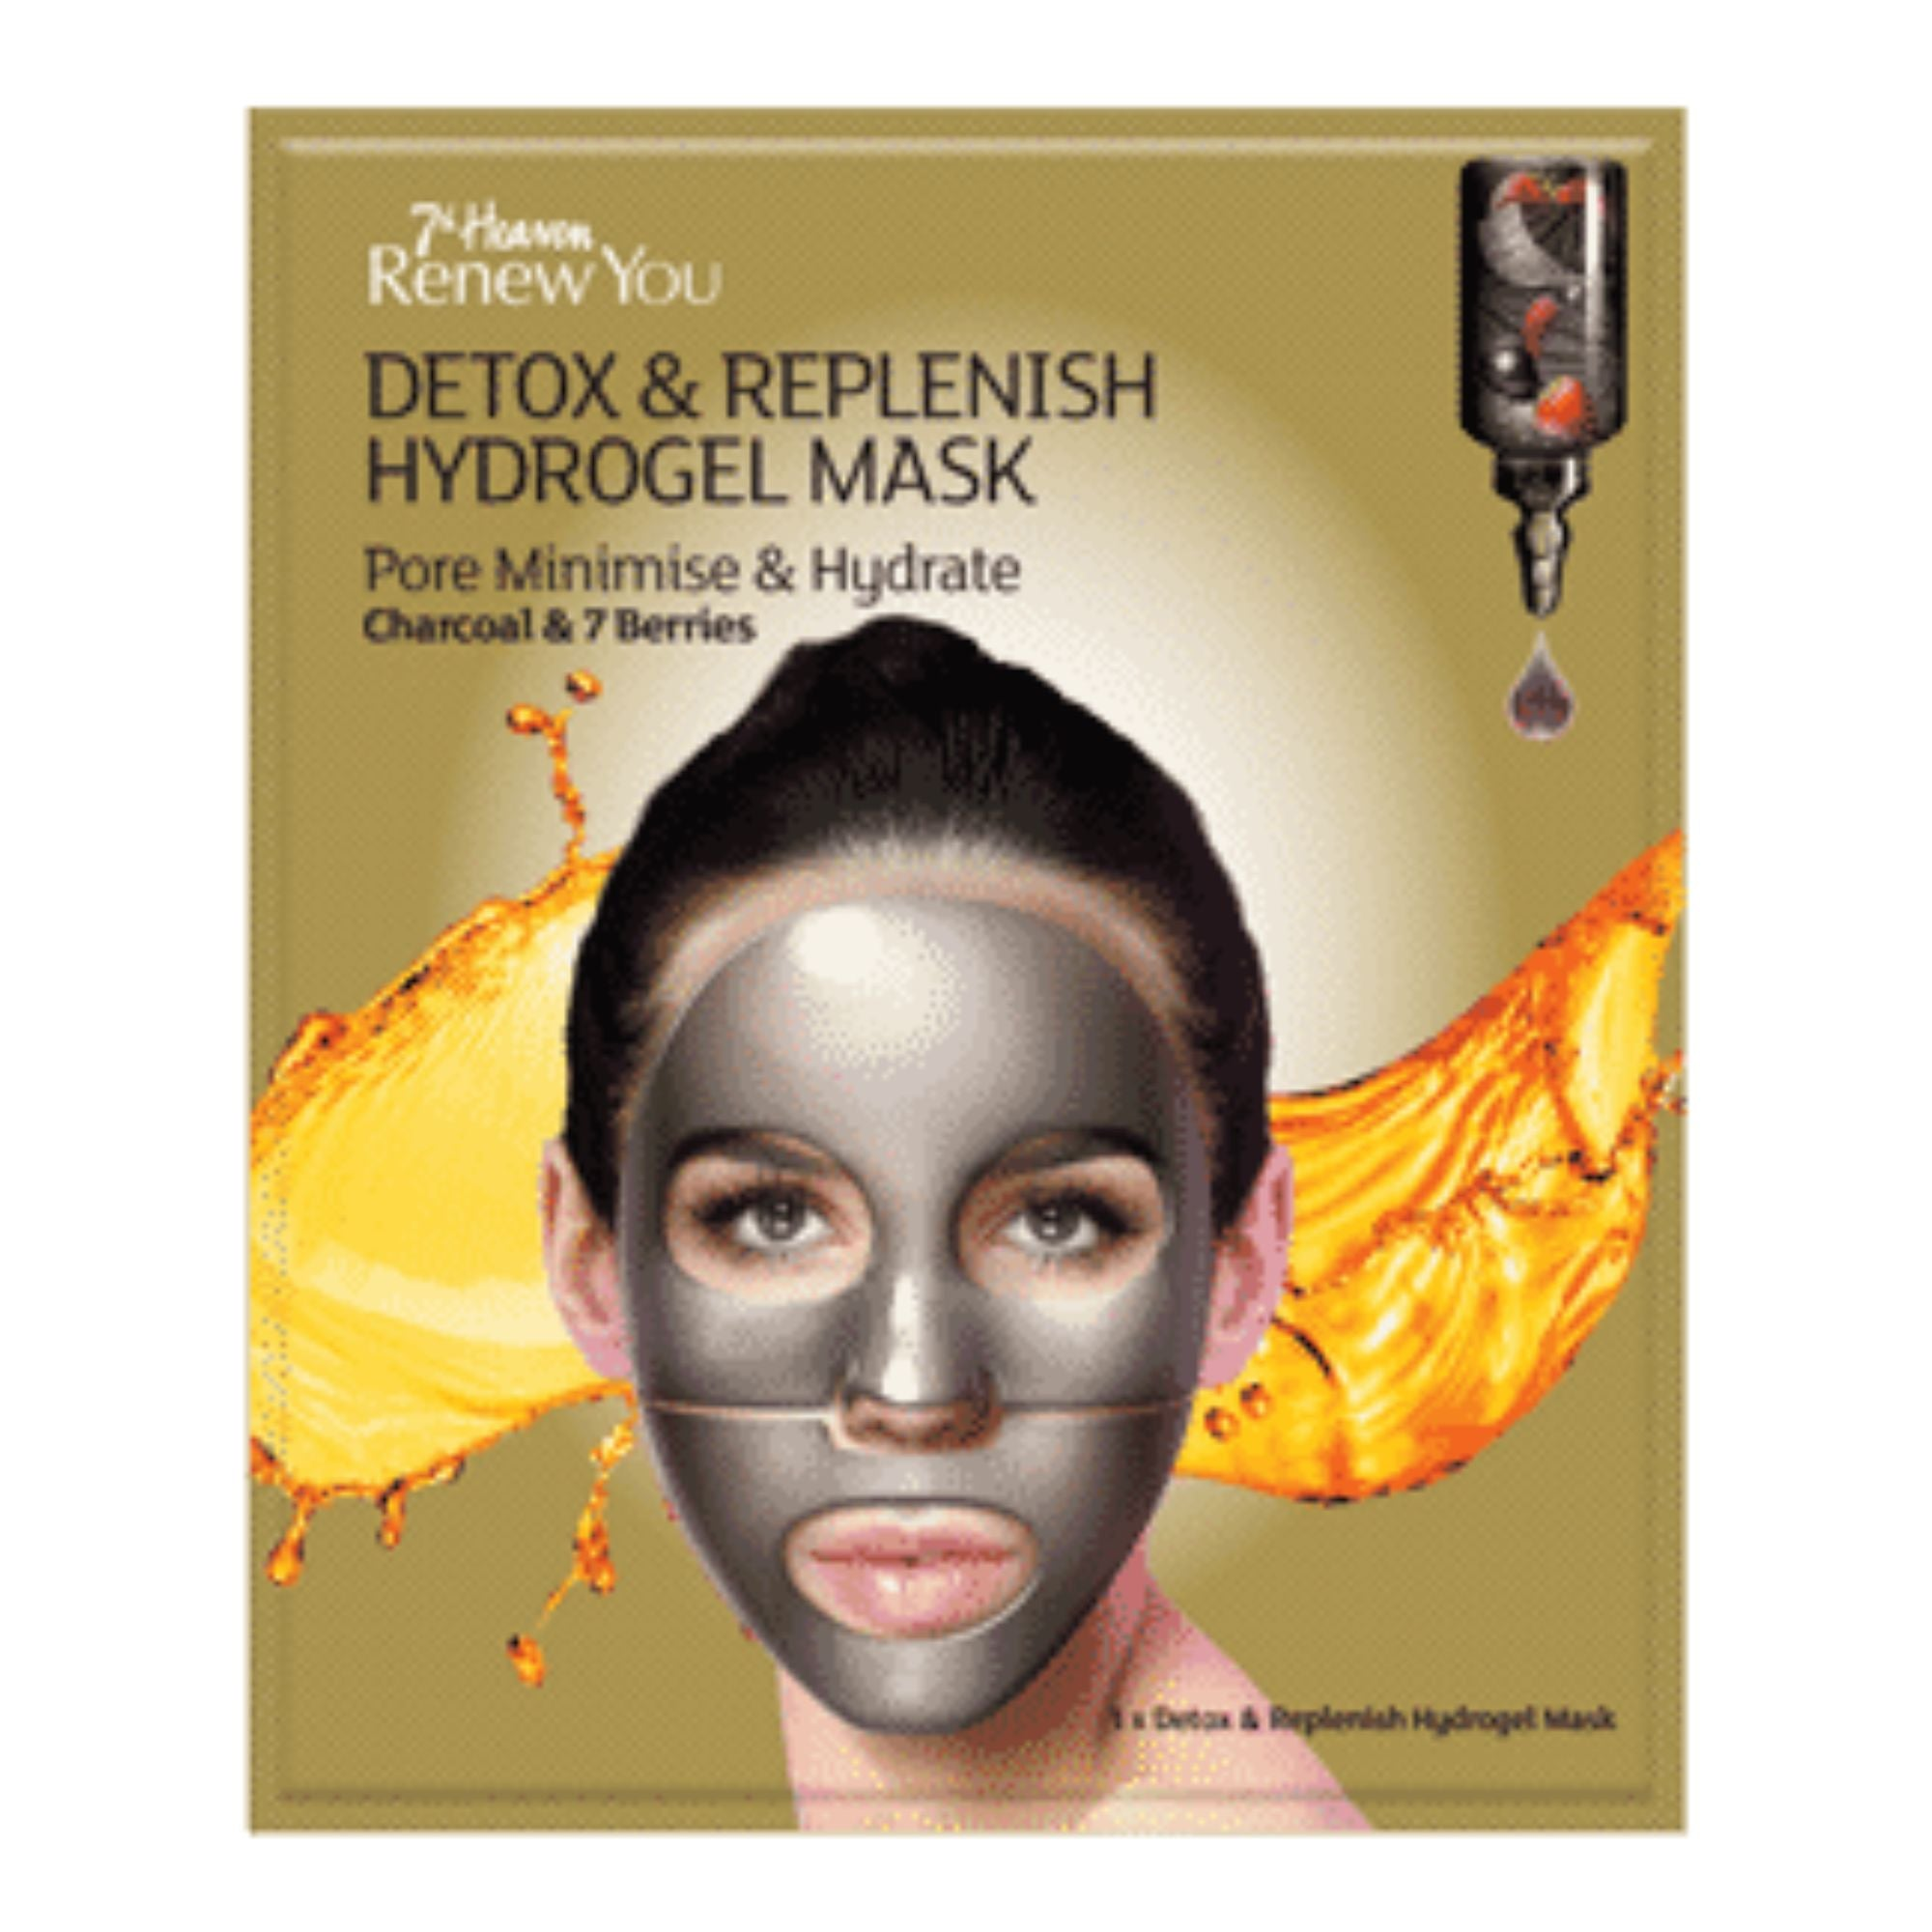 Renew You Detox & Replenish Hydrogel Mask